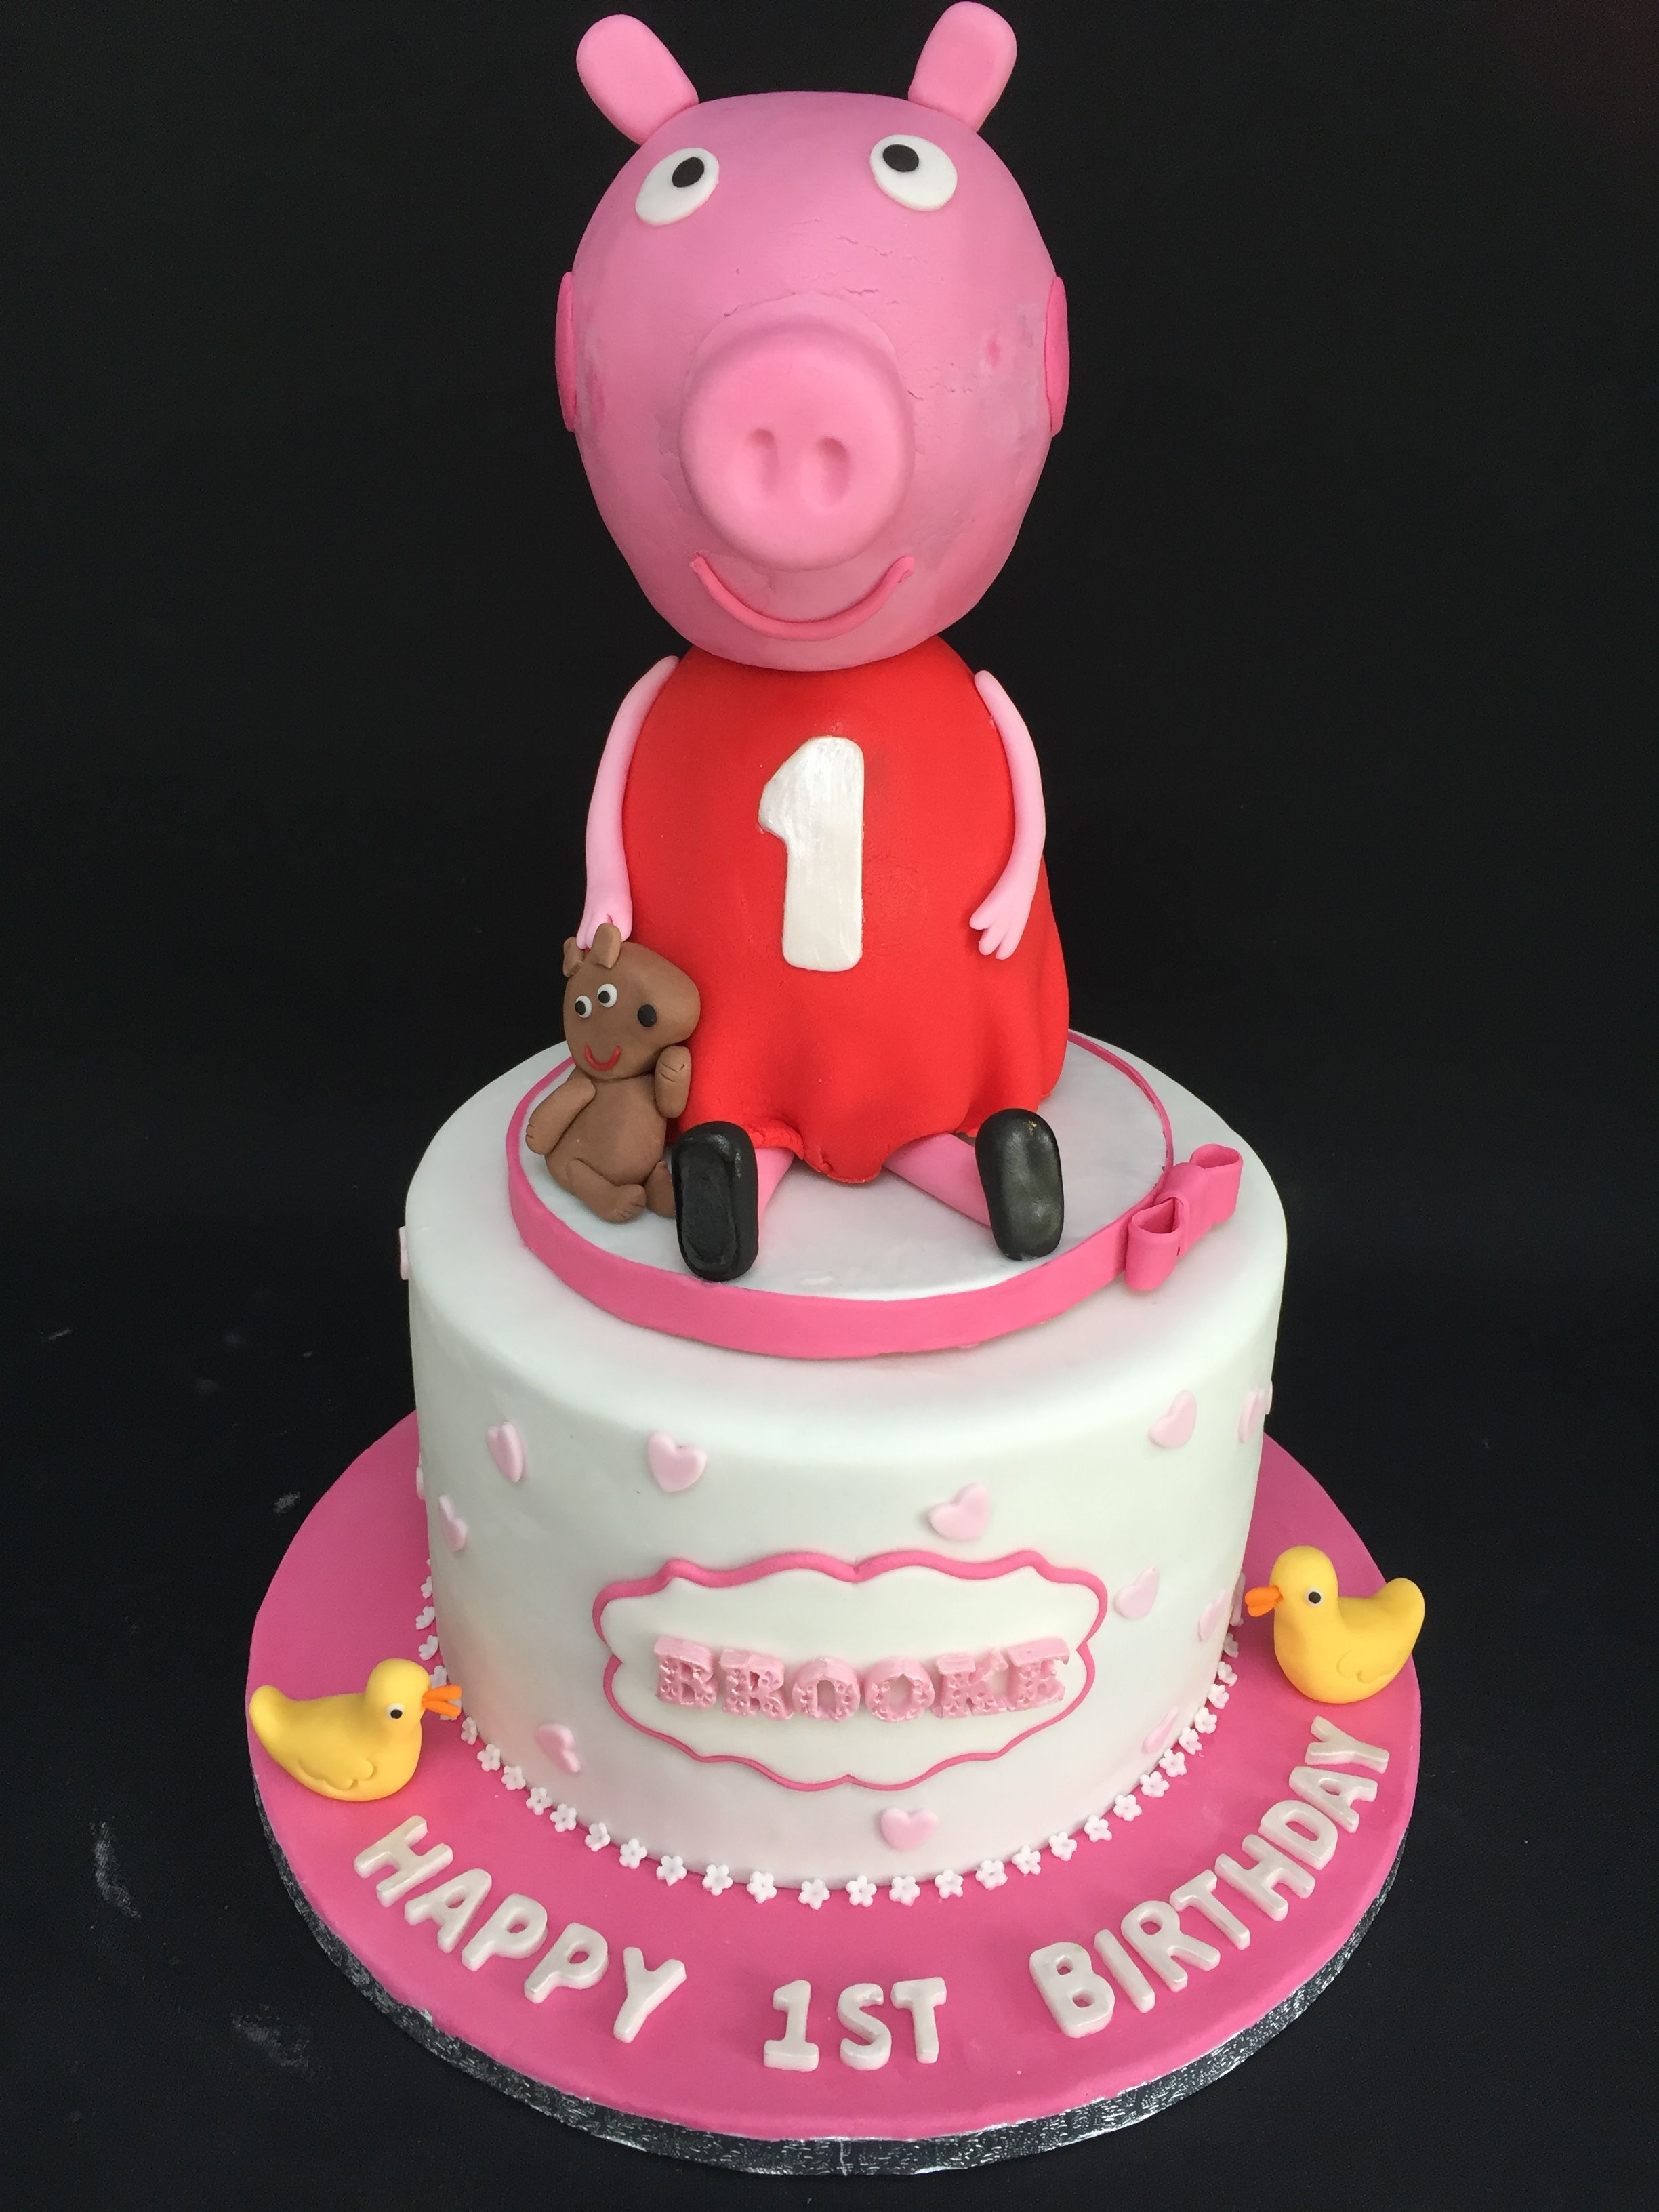 Giant Props Pig Themed Birthday Cake